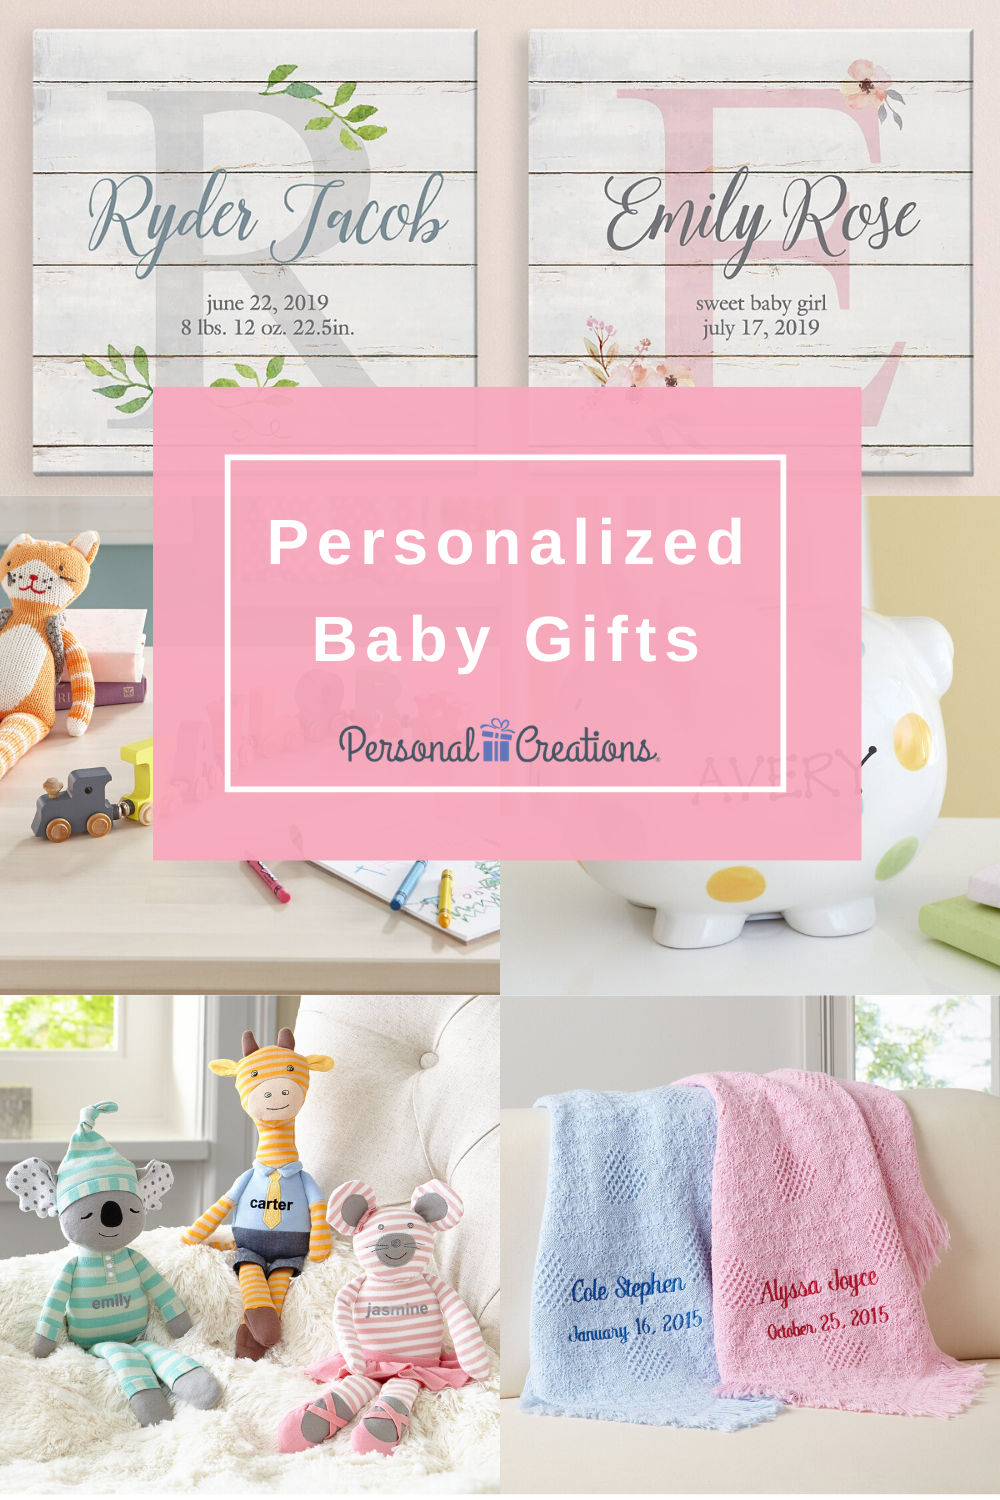 Personalized Baby Gifts In 2020 Personalized Baby Gifts Baby Gifts Custom Baby Gifts,Benjamin Moore Black Paints